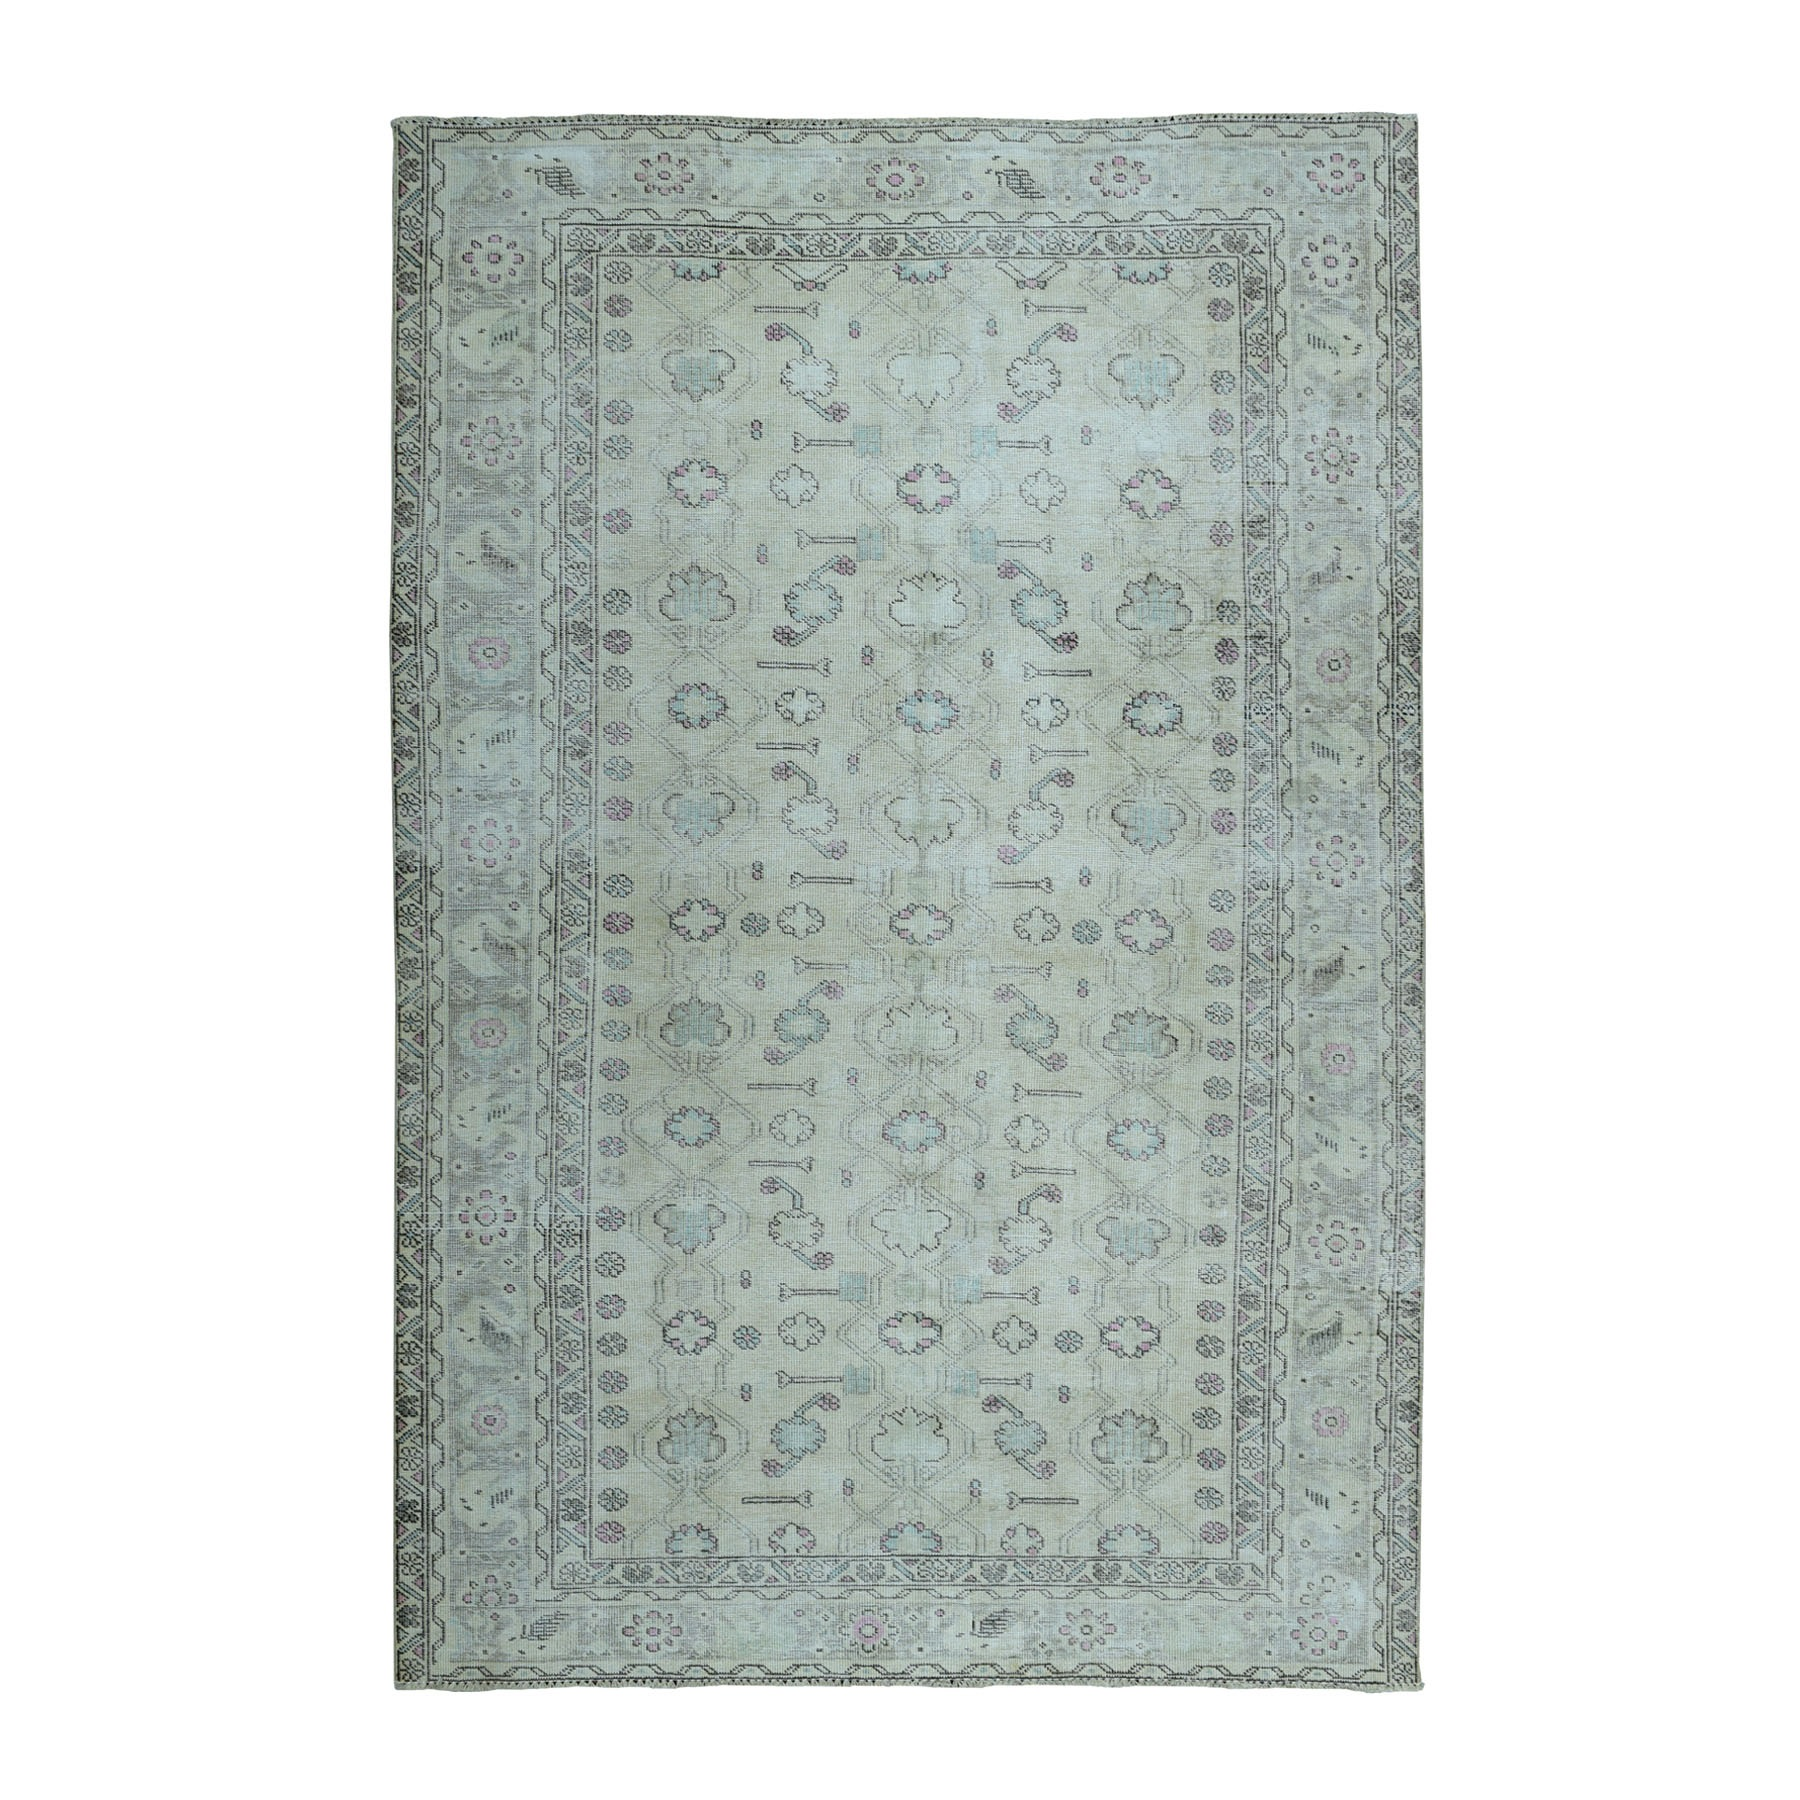 Fetneh Collection And Vintage Overdyed Collection Hand Knotted Grey Rug No: 01104258